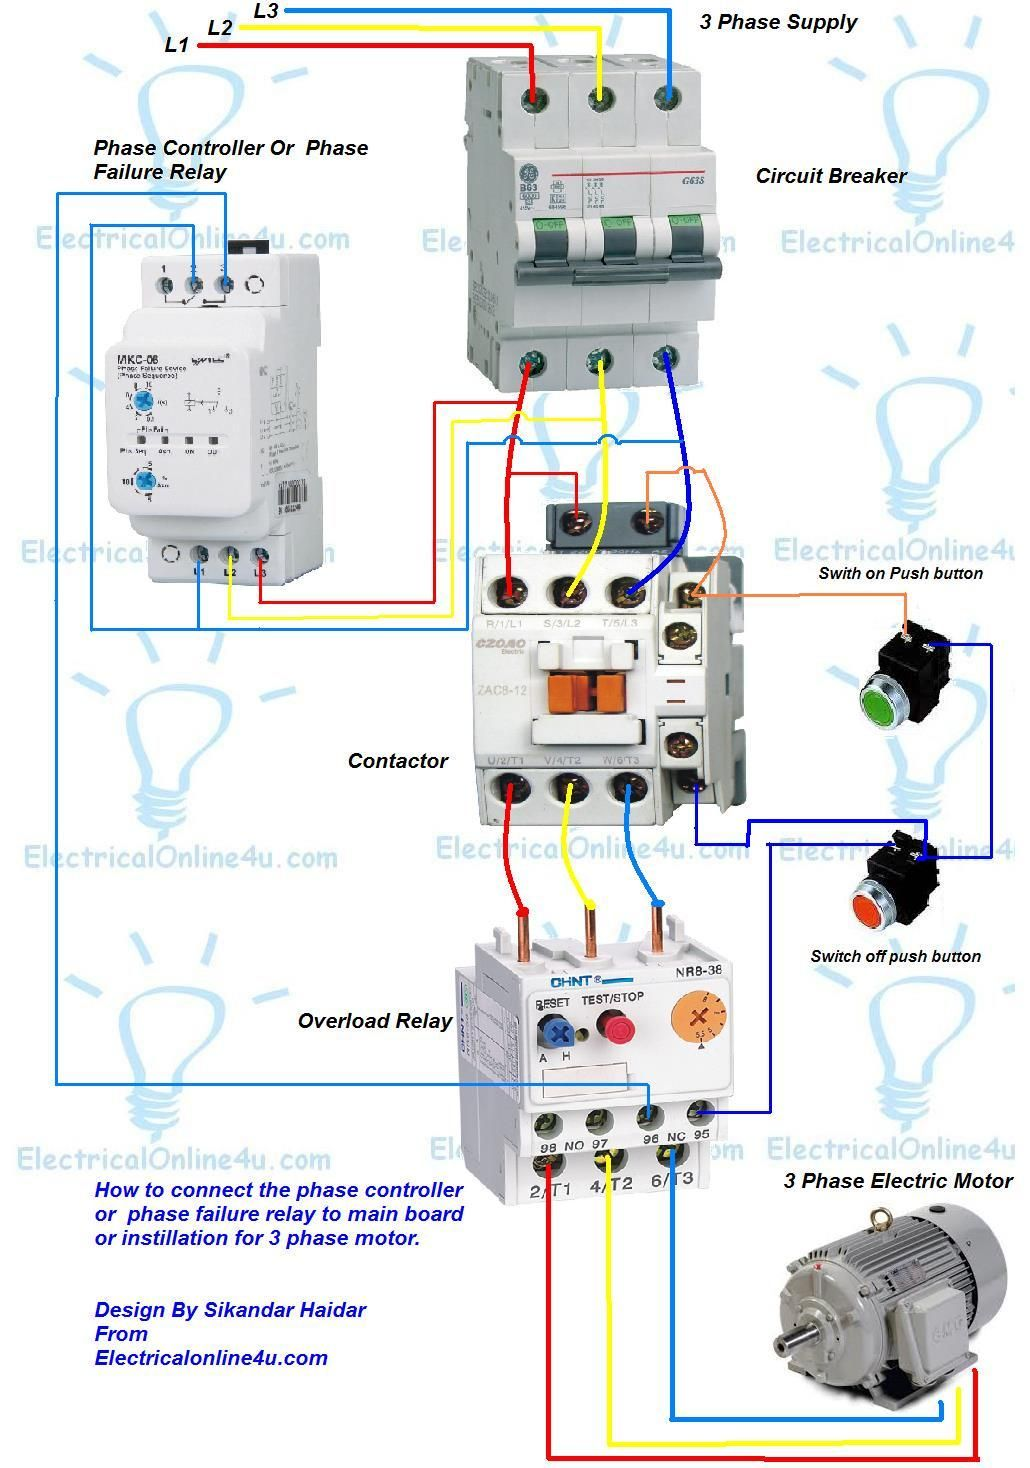 phase controller wiring / phase failure relay diagram | di on line statar in 2019 | electrical ... 3 phase y wiring diagram electrical 3 phase switch wiring diagram